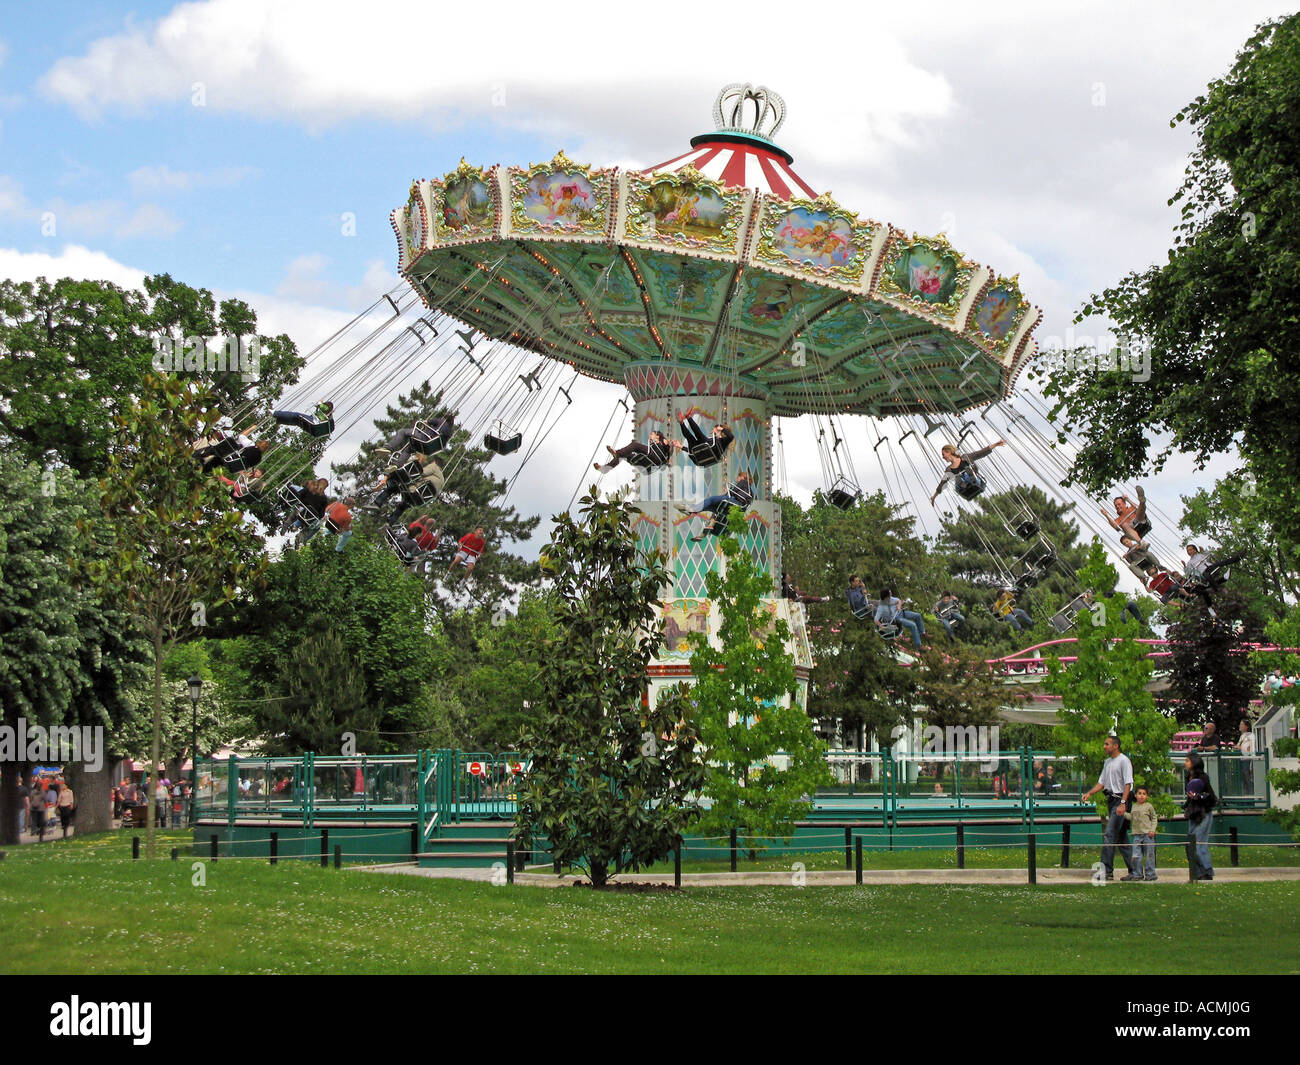 Roundabout in le jardin d acclimatation paris france stock Le jardin francais